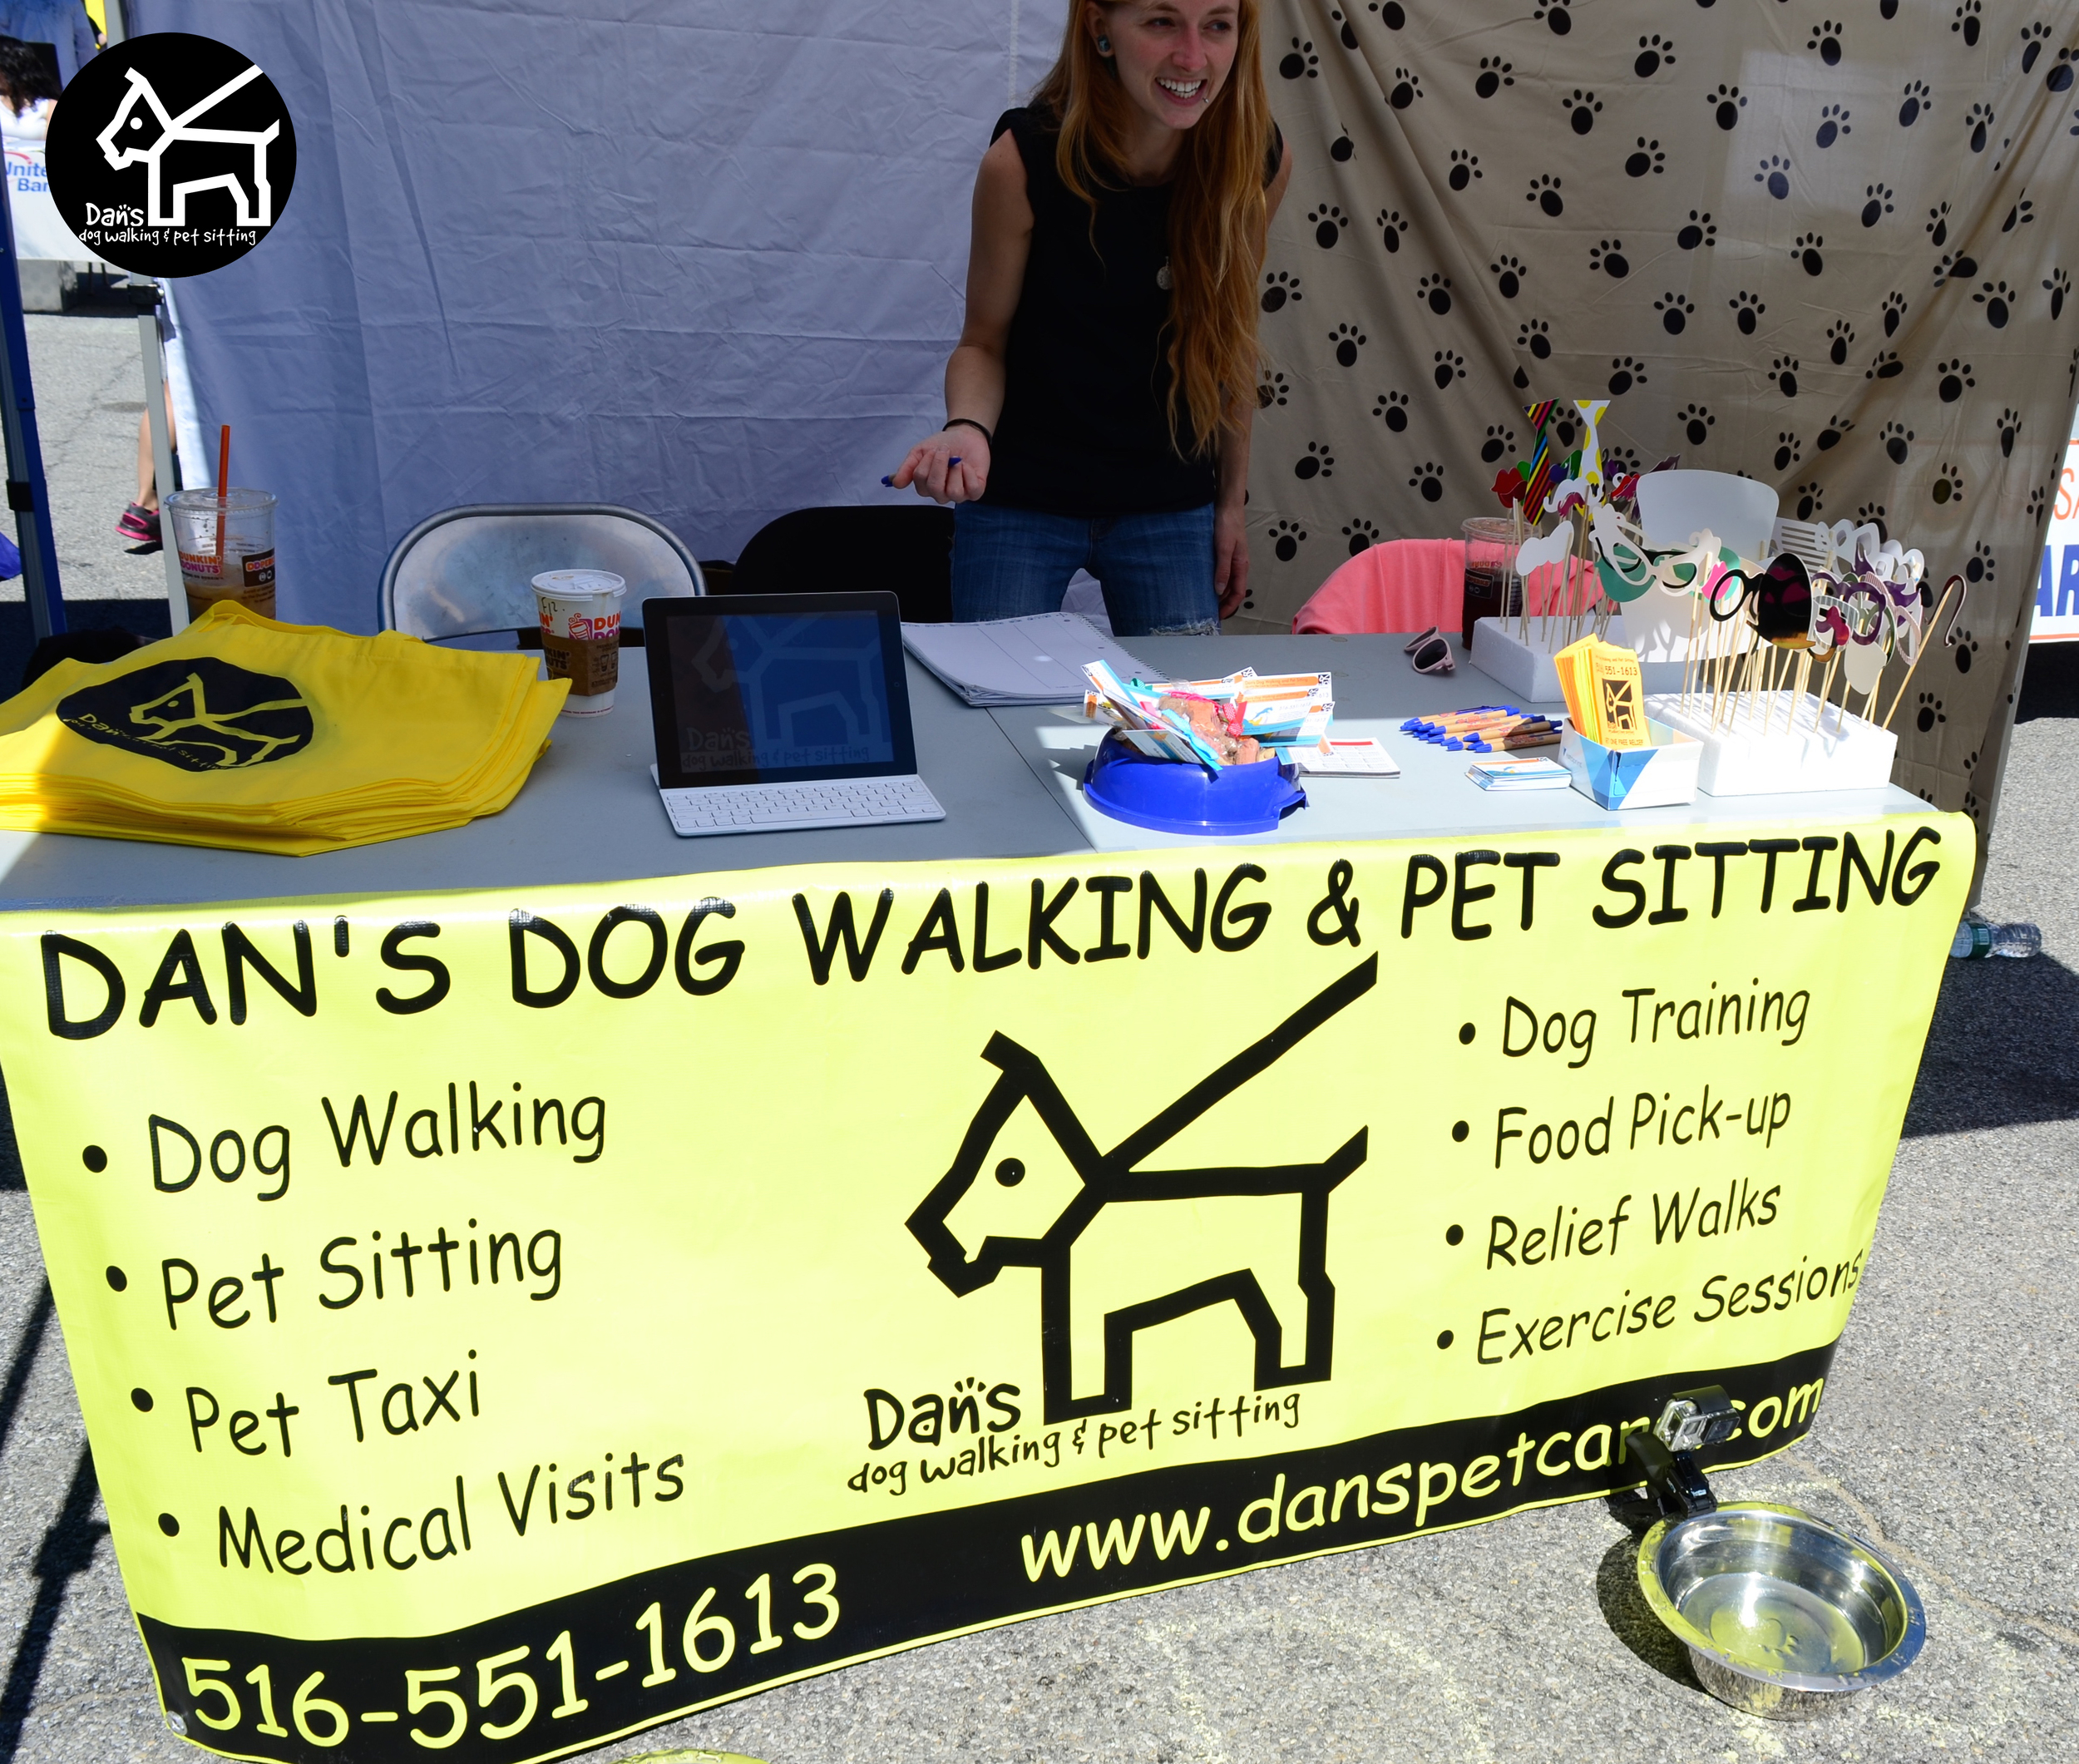 Ali is all smiles at Dan's Dog Walking and Pet Sitting Doggie Photo Booth at Harbor Fest 2015.jpg